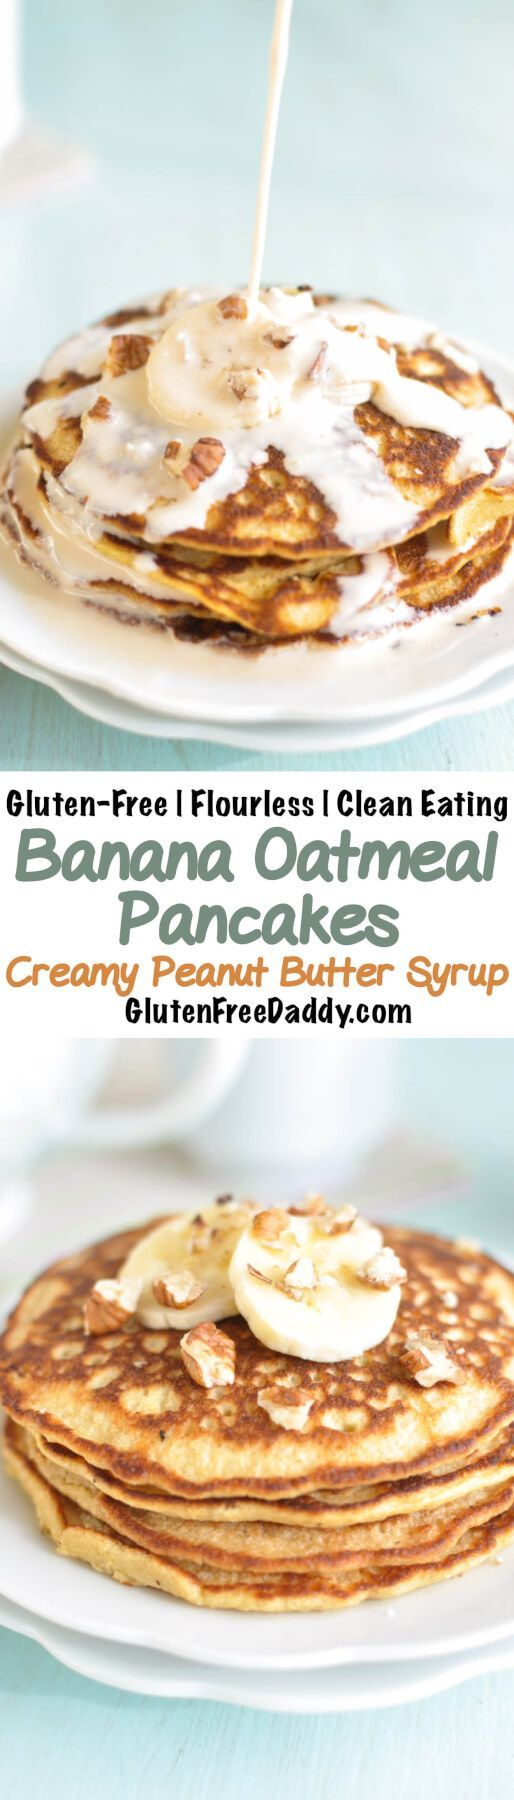 These nutritional banana oatmeal pancakes with creamy peanut butter syrup are delicious and will leave you satisfied all morning long without feeling sluggish or heavy. Plus, they only take 5 minutes to throw together in a blender! {Flourless, Gluten-Free, Clean Eating}